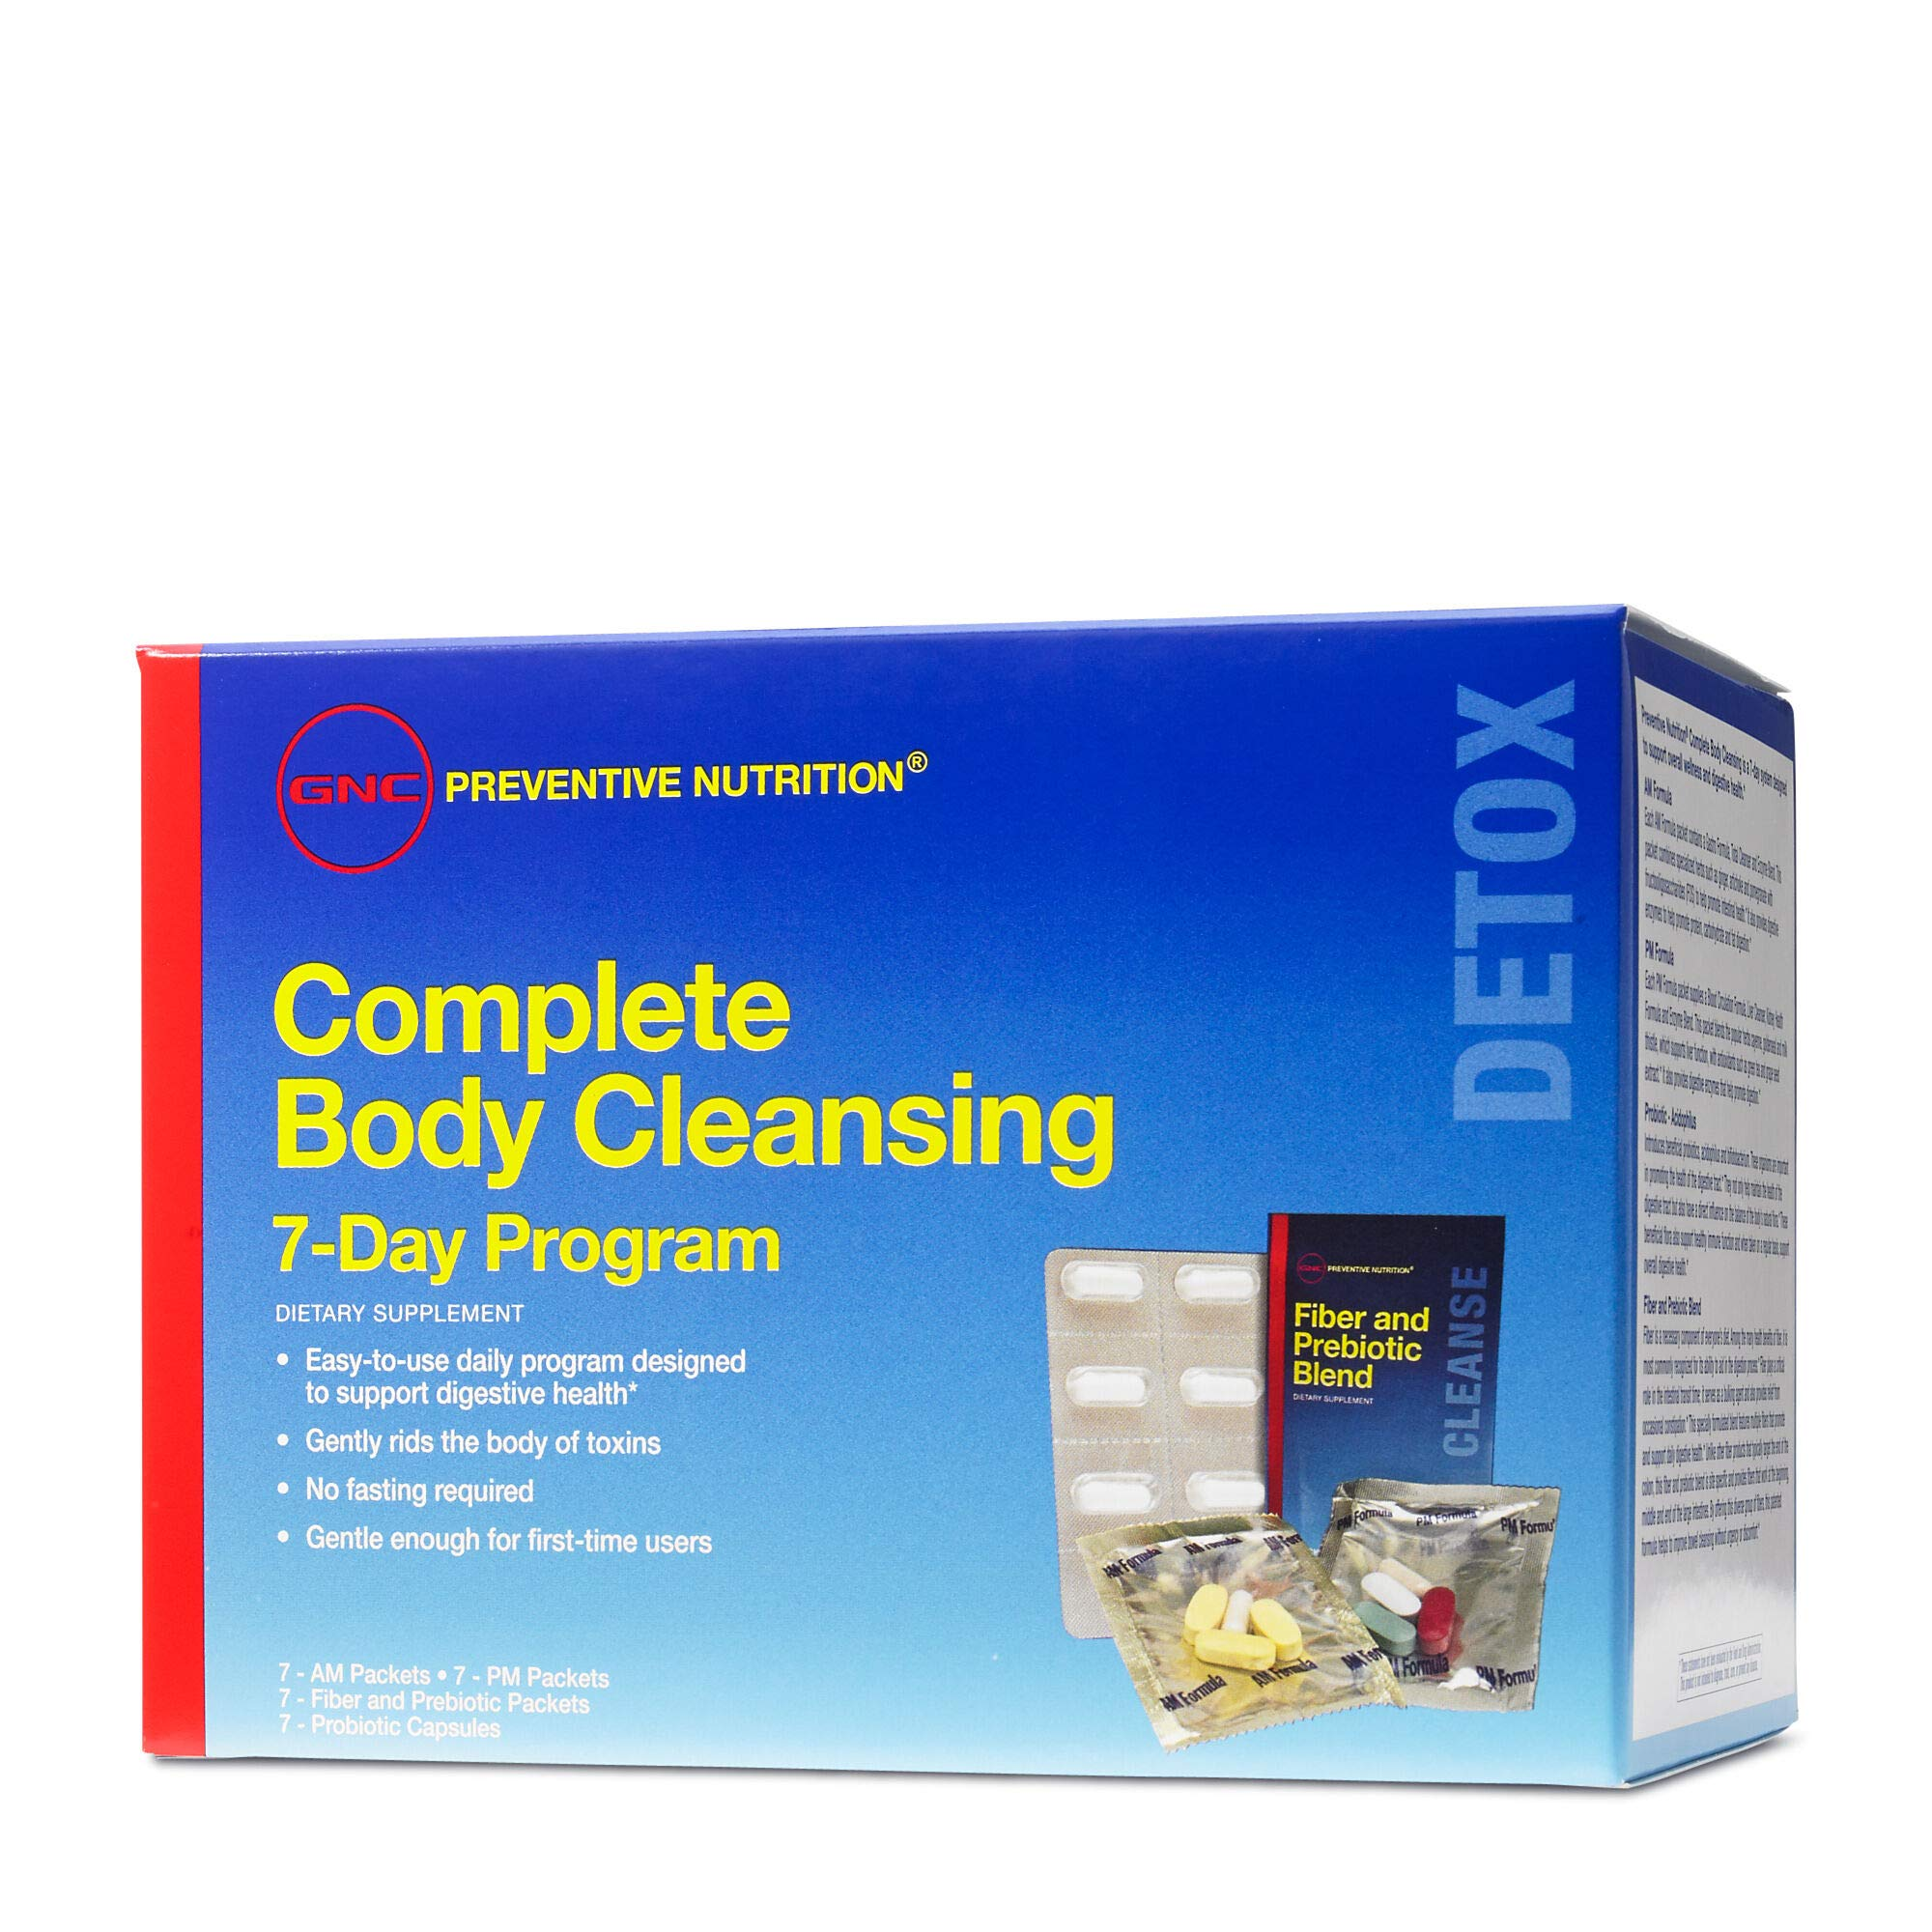 GNC Preventive Nutrition Complete Body Cleansing Program, 7 Day(s), Supports Overall Wellness and Digestive Health